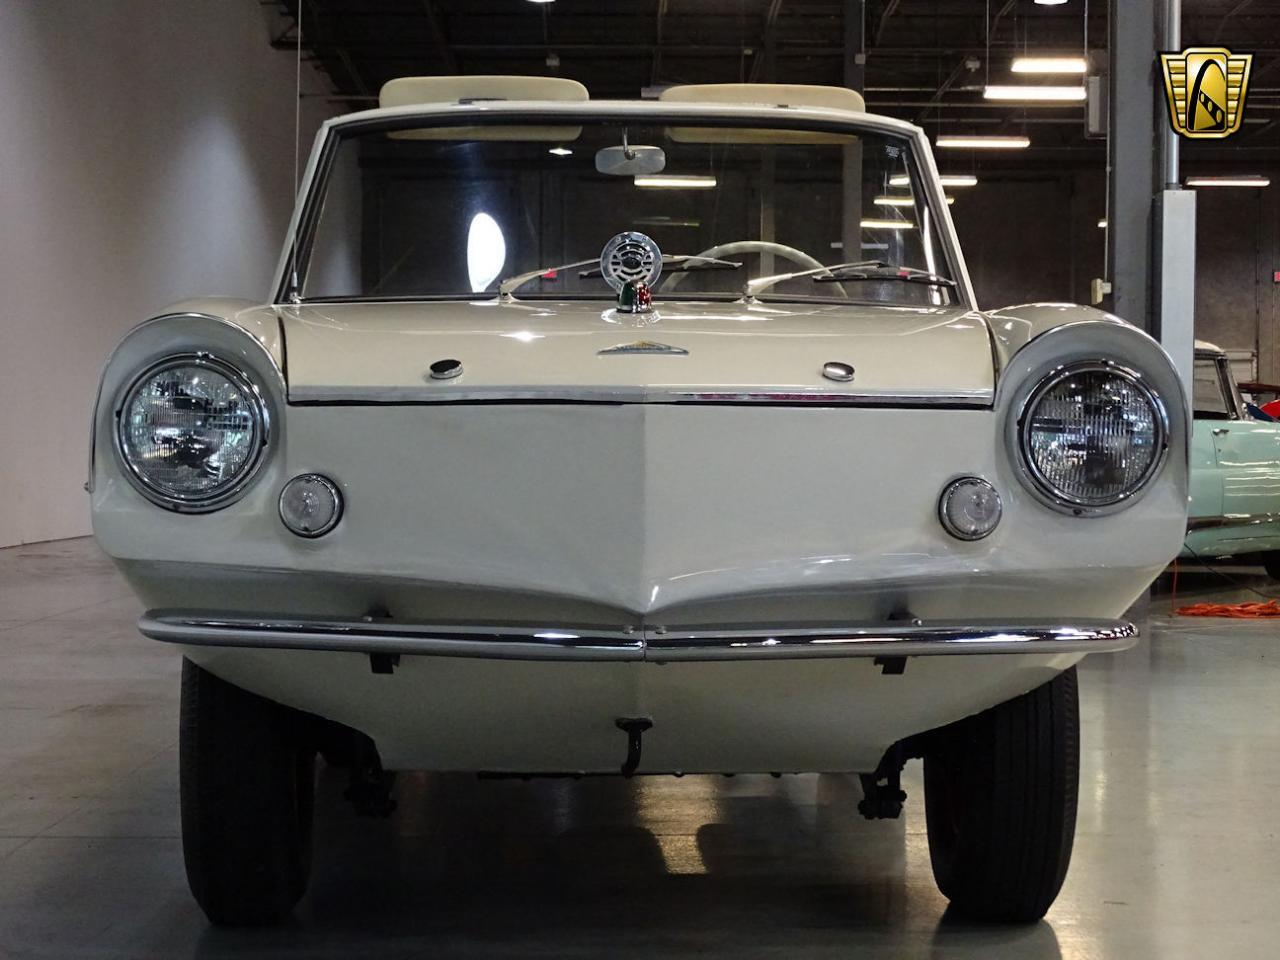 Large Picture of 1967 770 located in Lake Mary Florida - $59,000.00 Offered by Gateway Classic Cars - Orlando - LI53